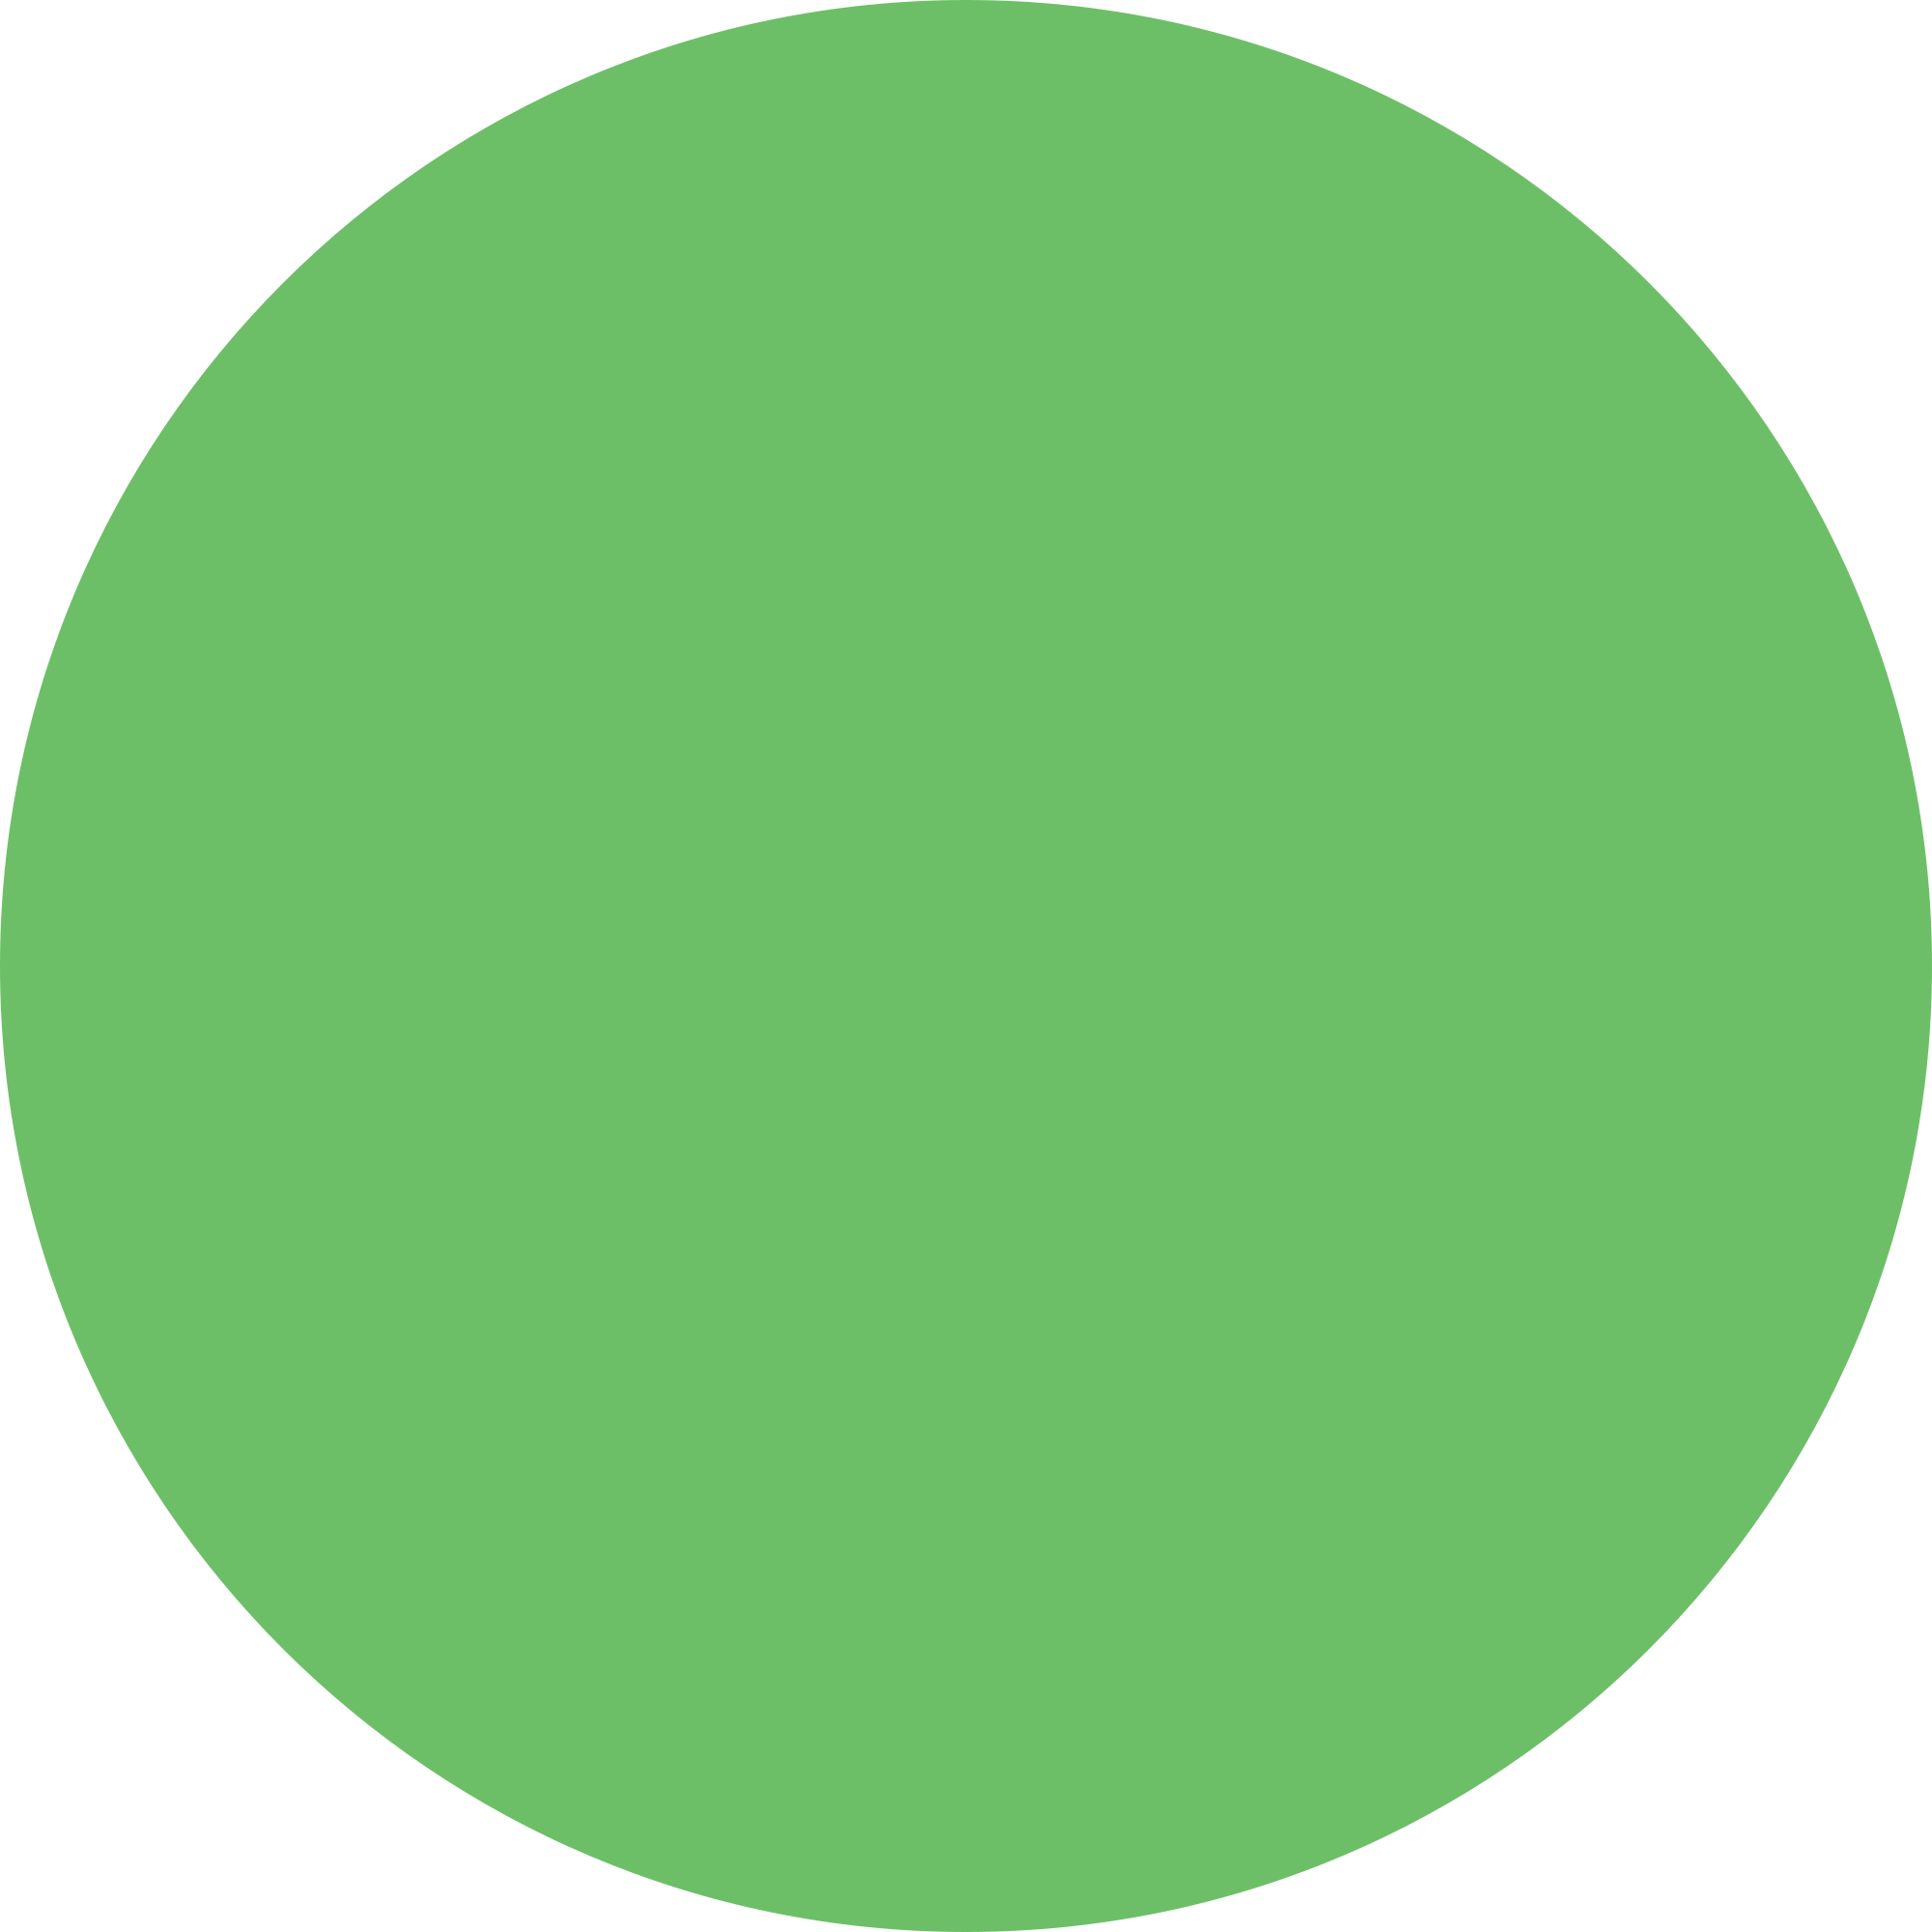 Green oval png. File lacmta circle line